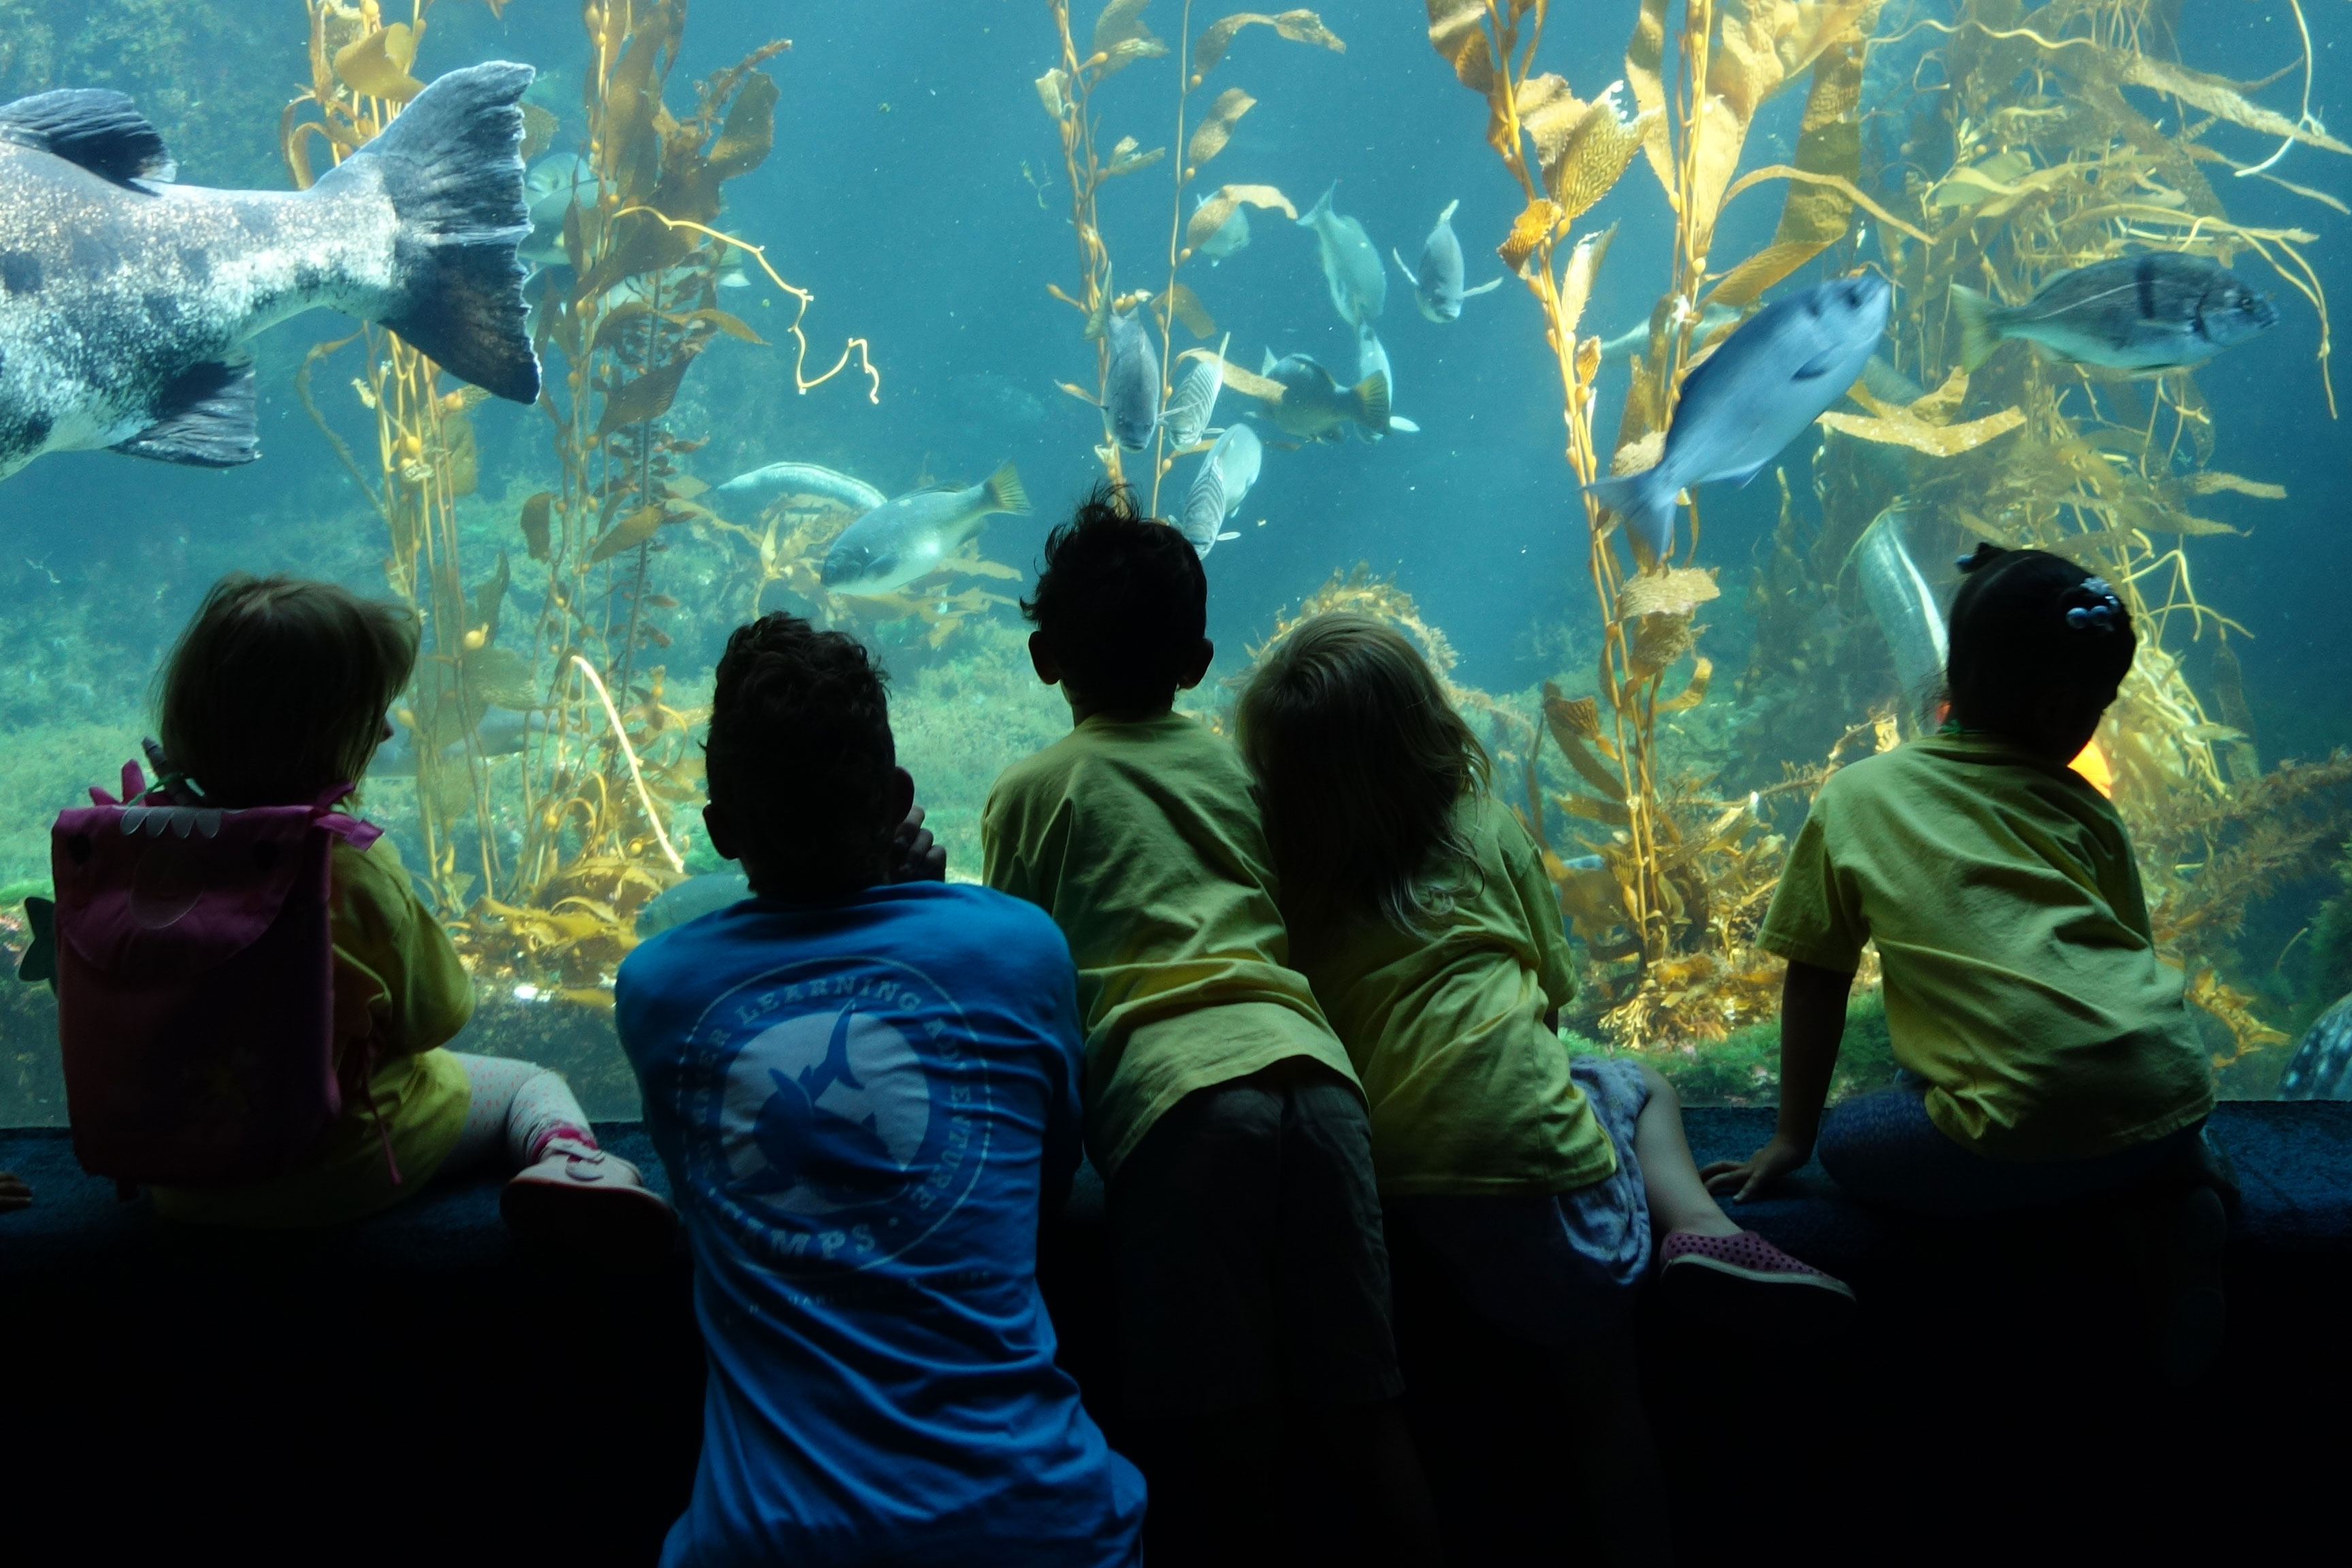 Childrens Birthday Parties Birch Aquarium At Scripps